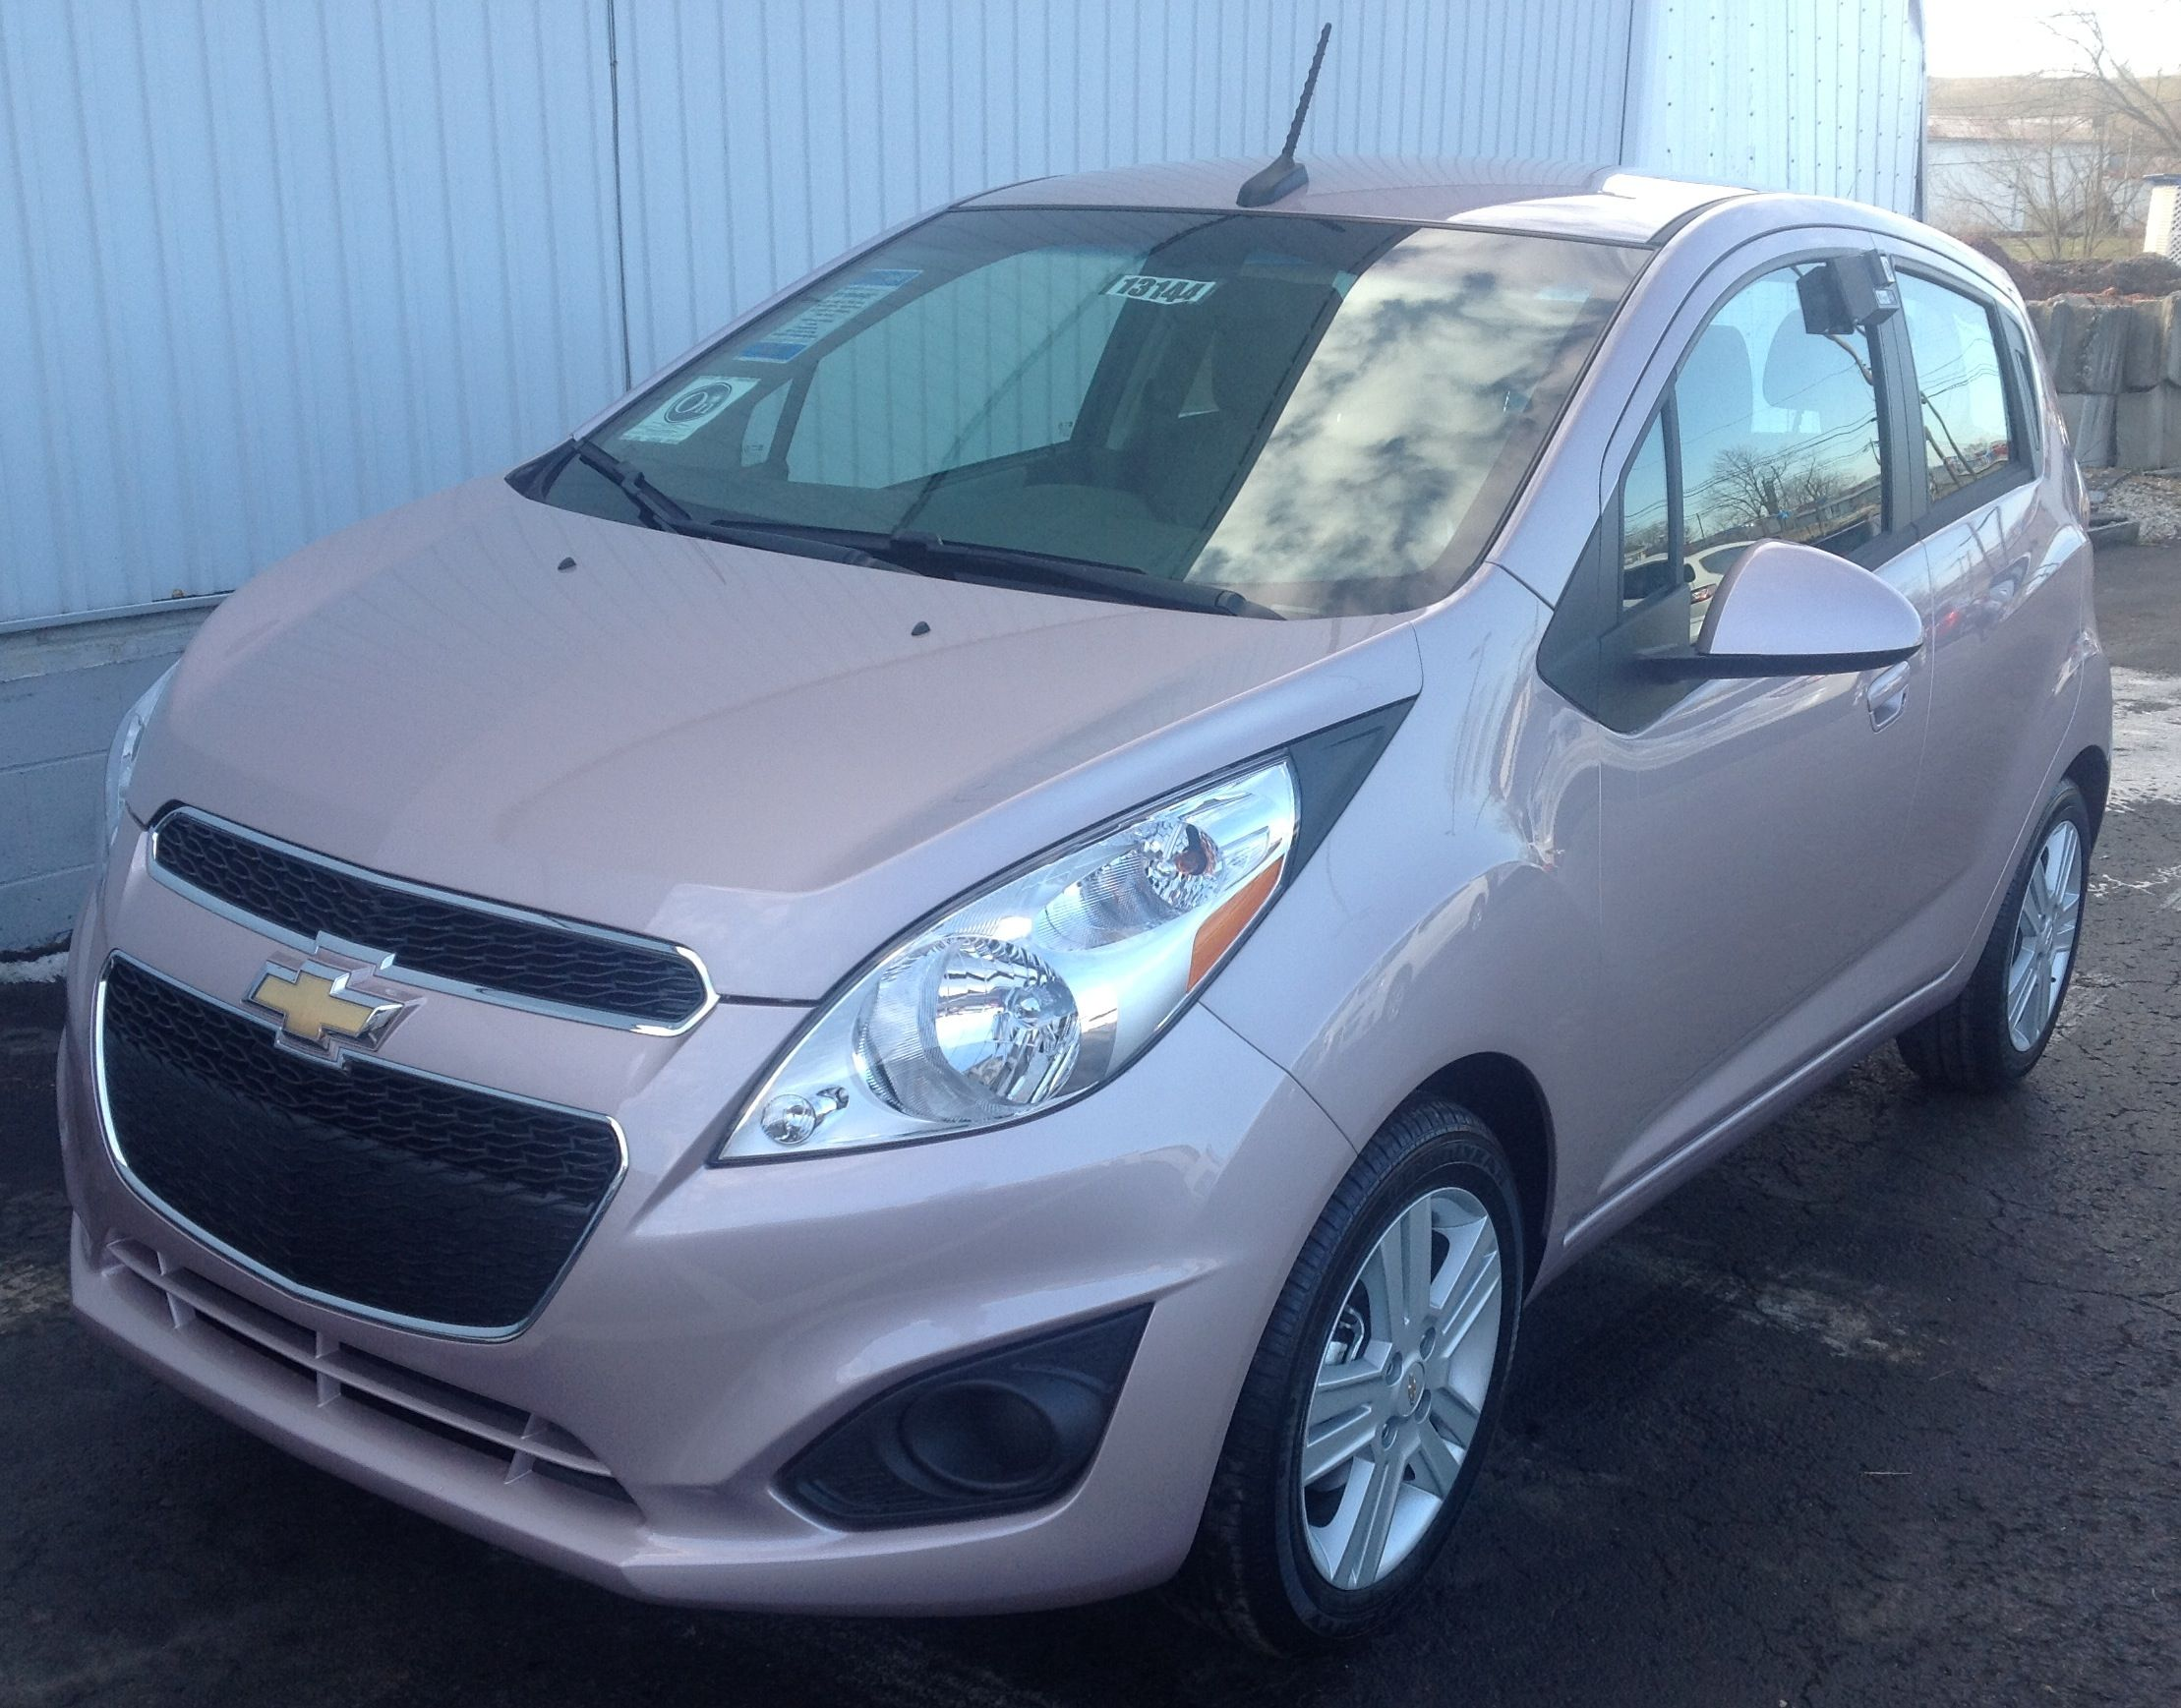 2013 Chevrolet Spark Audio System Am Fm Stereo With Seek And Scan And Digital Clock Includes Outside Temperature Displ Chevrolet Spark Chevrolet Audio System